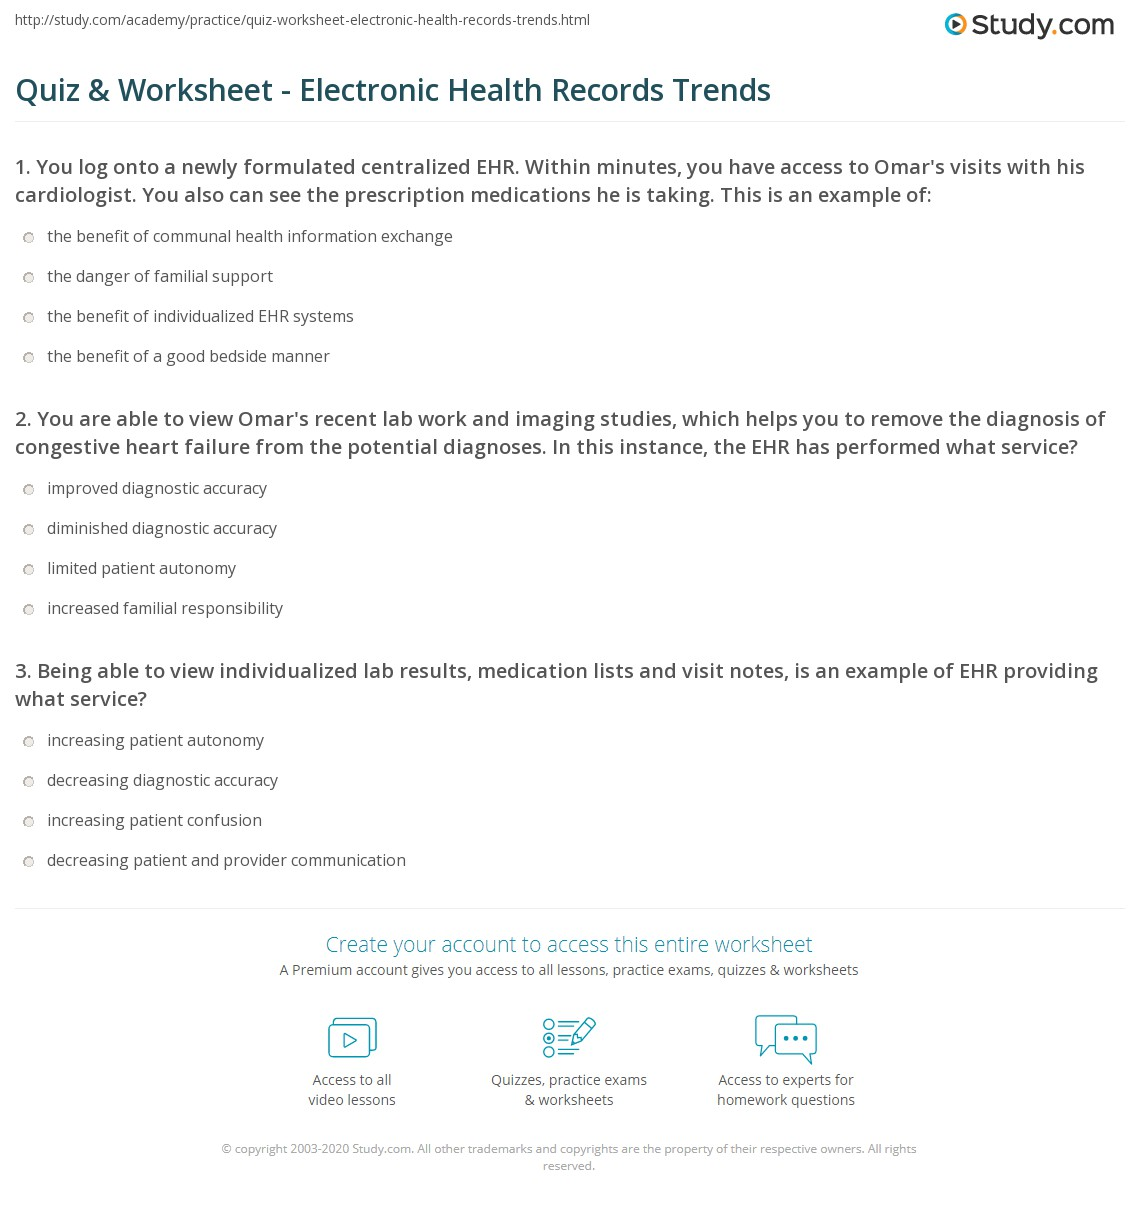 Quiz & Worksheet - Electronic Health Records Trends  Study.com